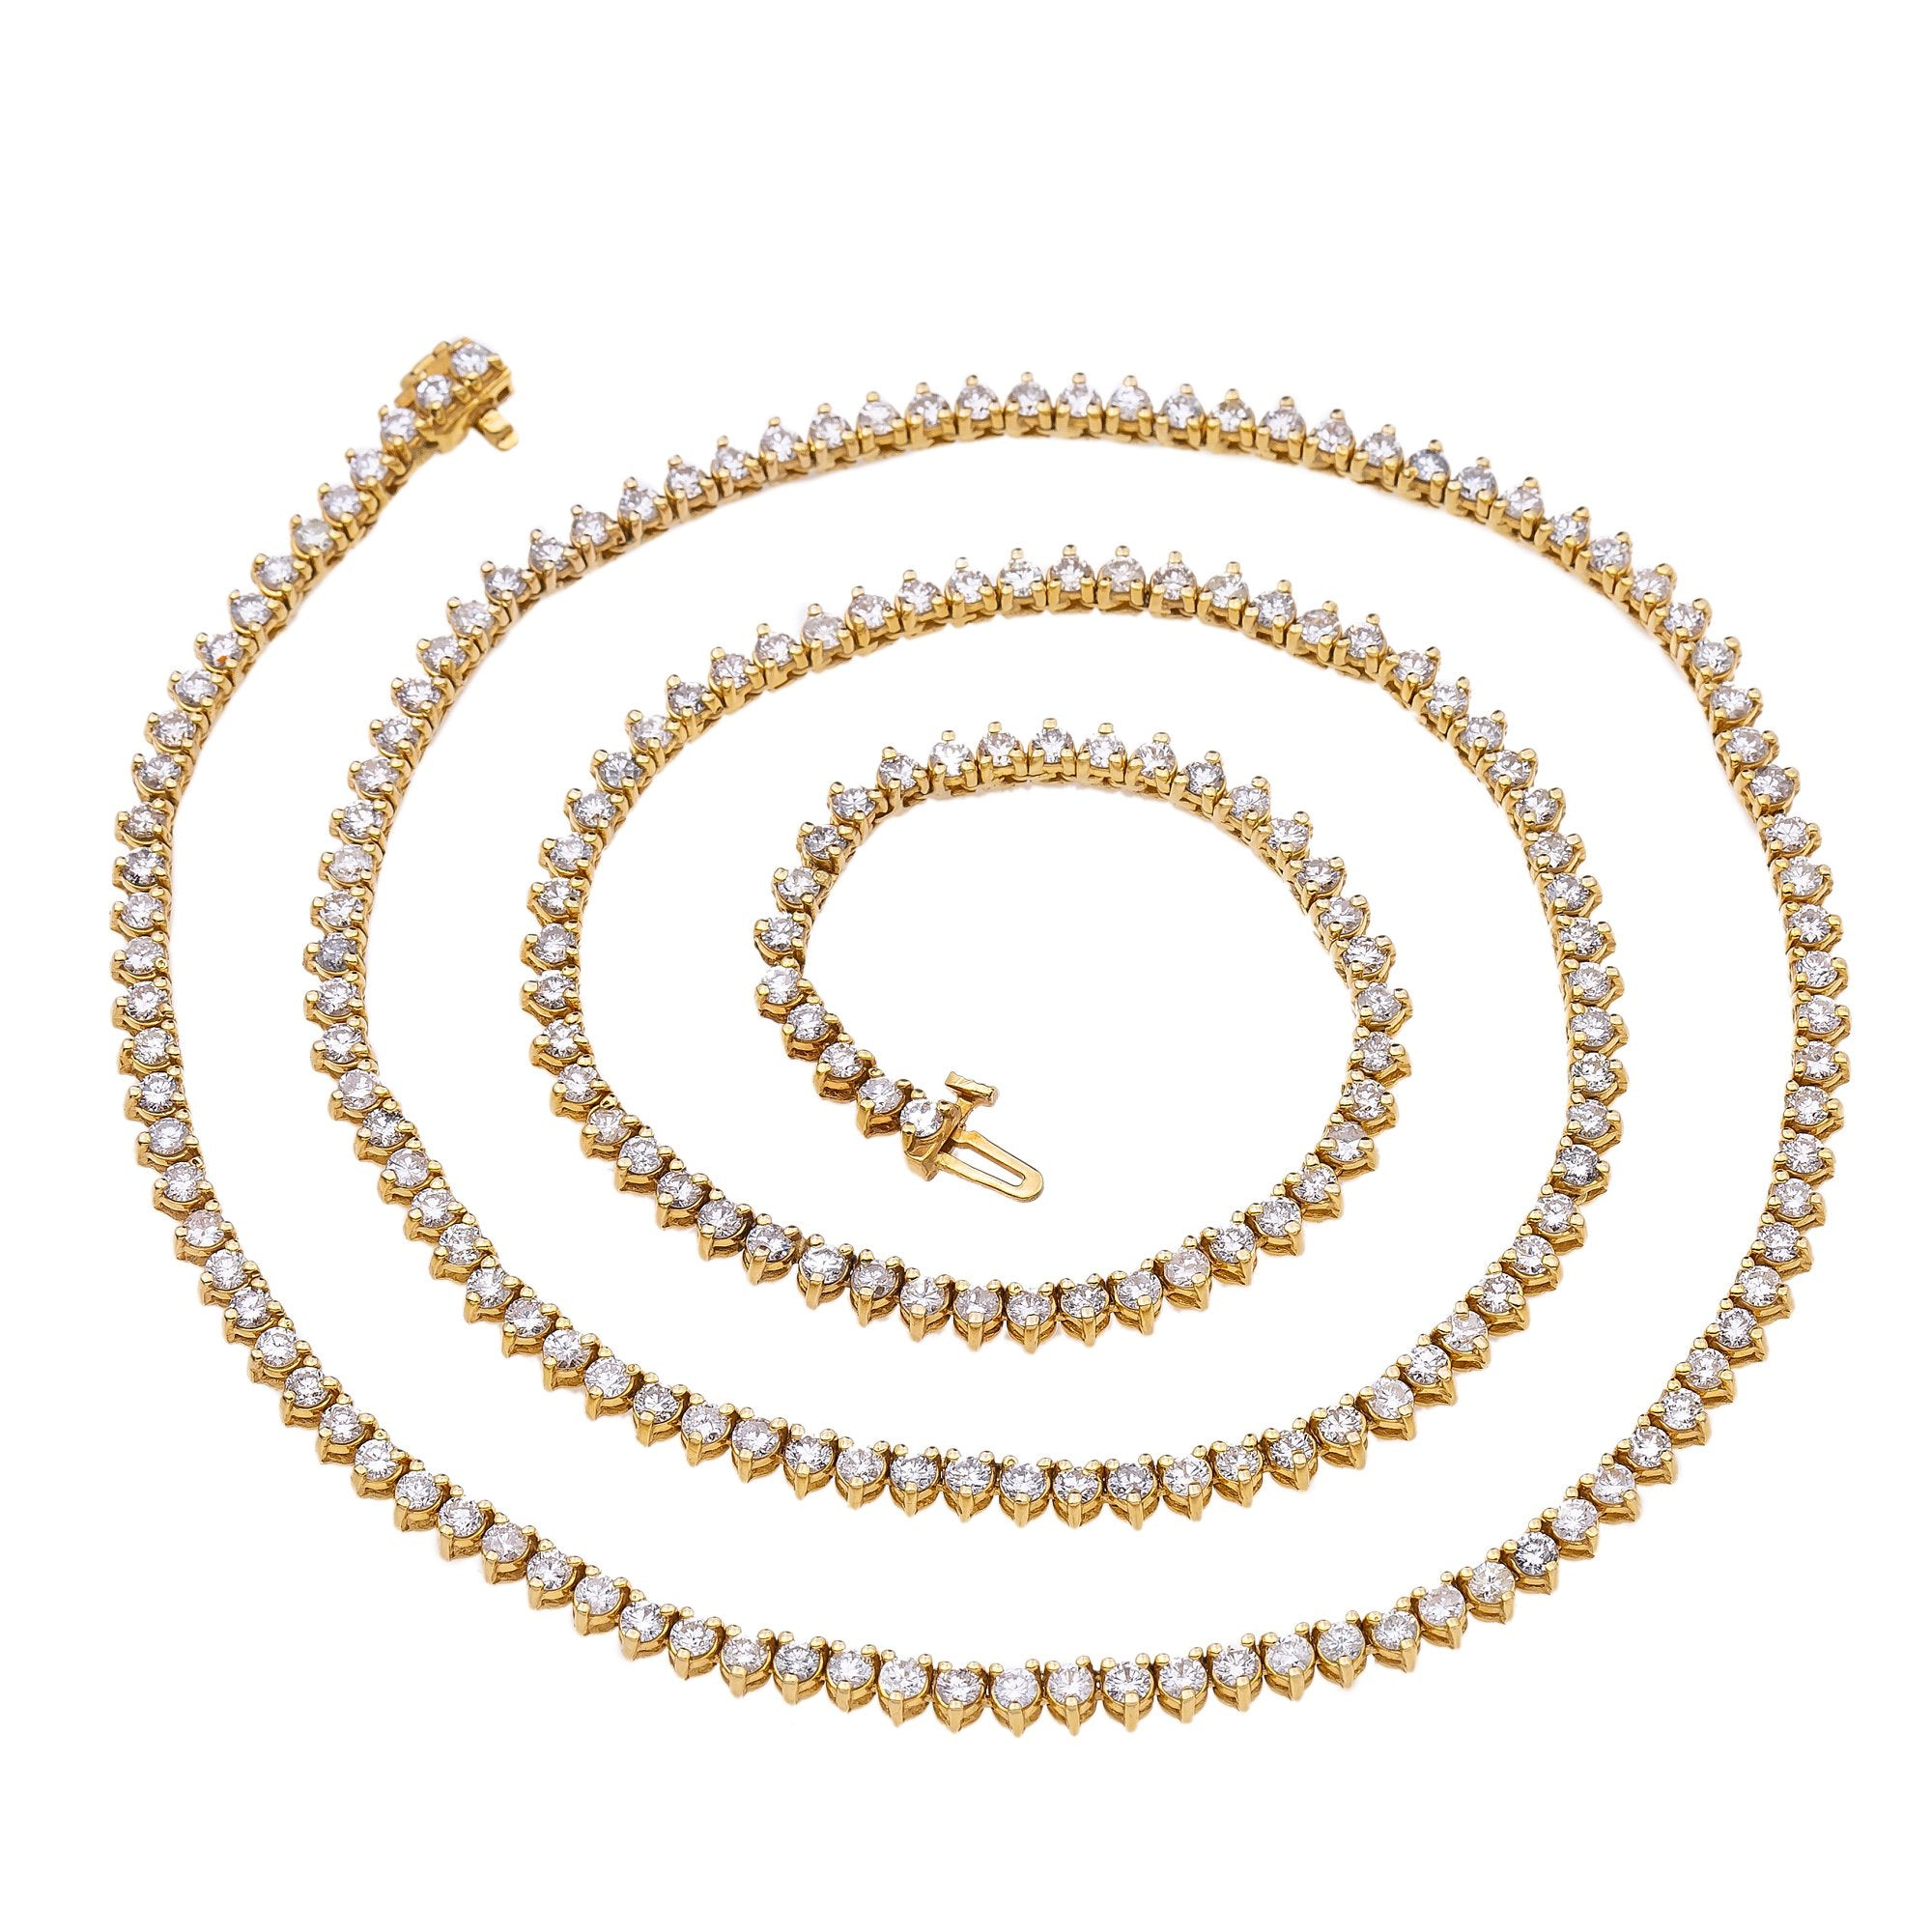 14K Yellow Gold Men's Tennis Chain With 12.05 CT Diamonds